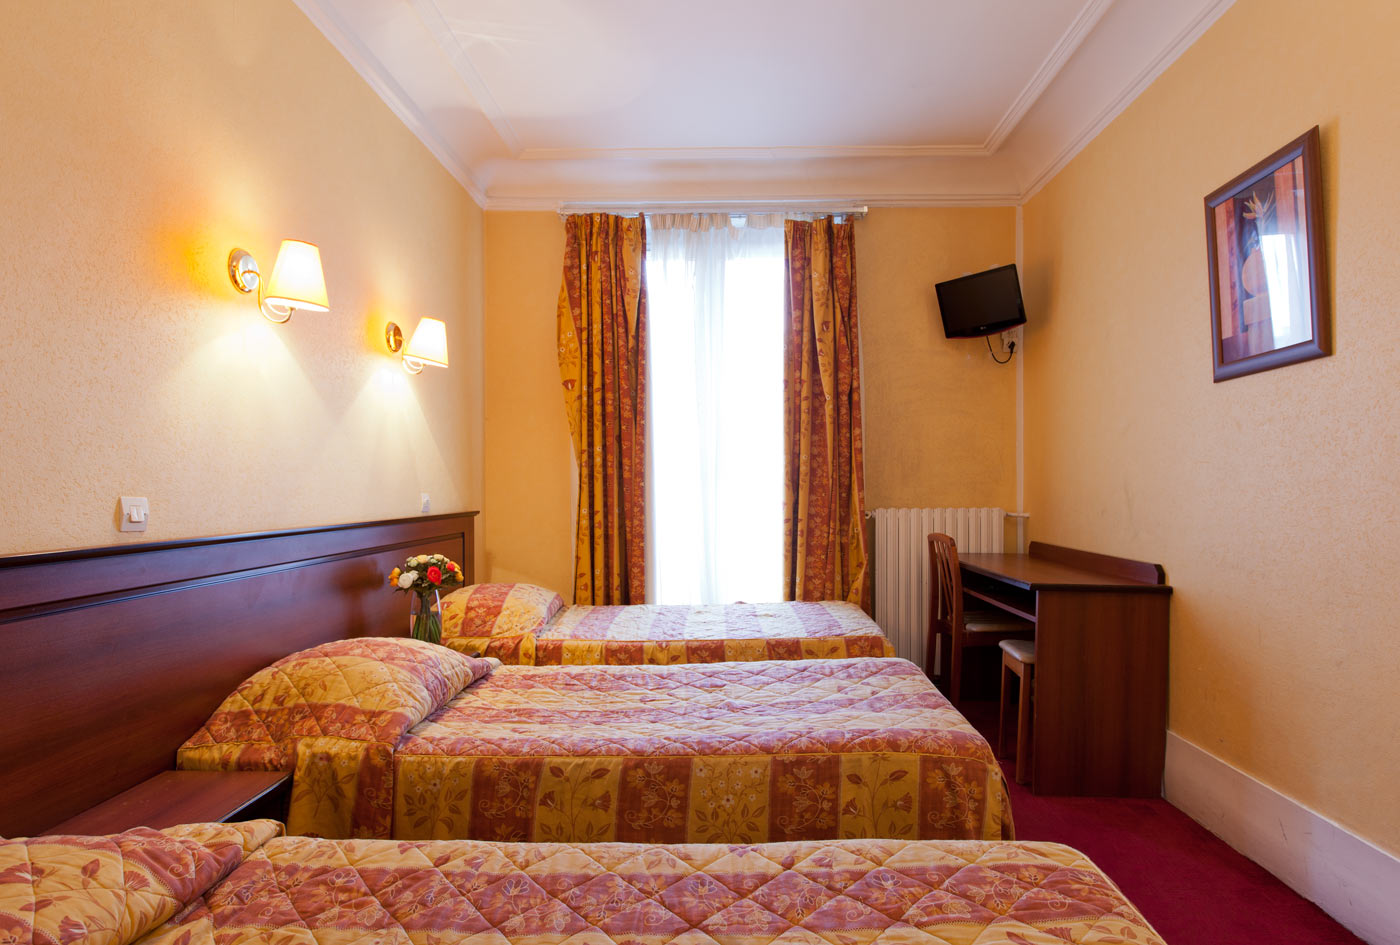 H tel paris centre r servations site officie - Chambre 3 personnes paris ...